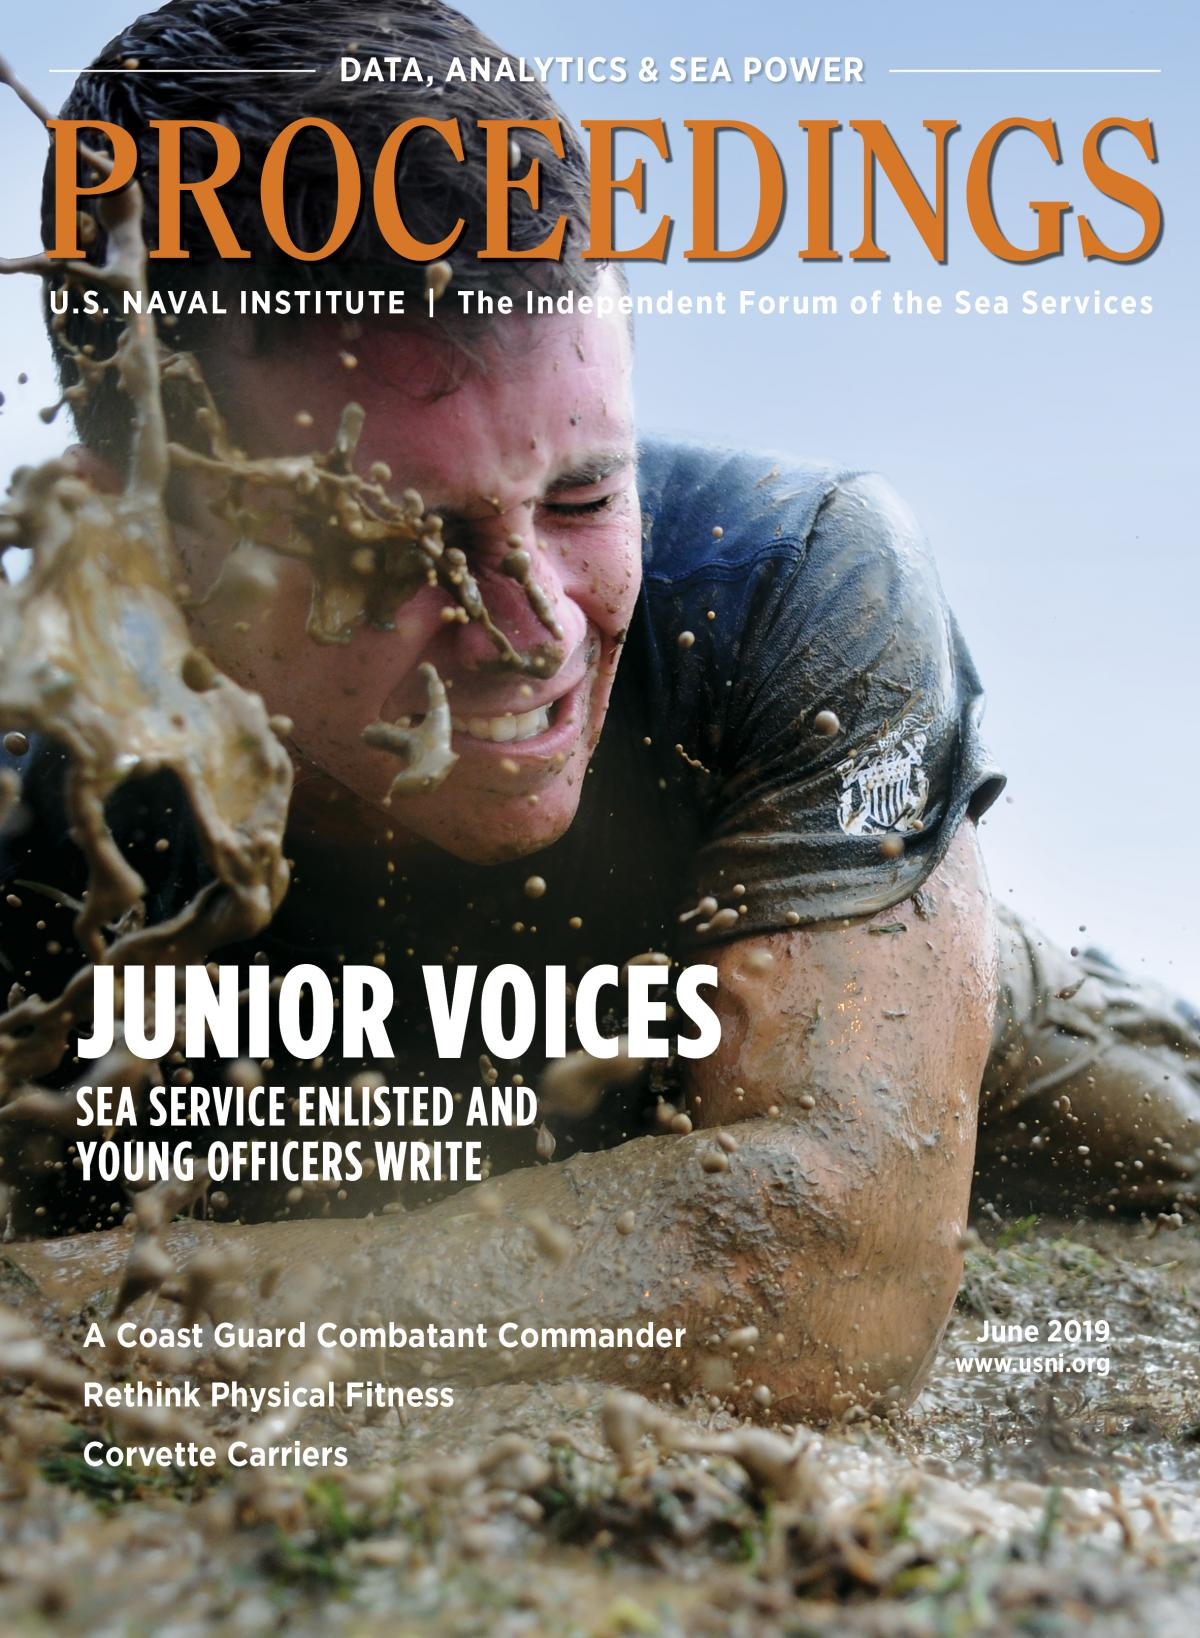 Proceedings - May 2019 Vol. 145/5/1,395 Cover